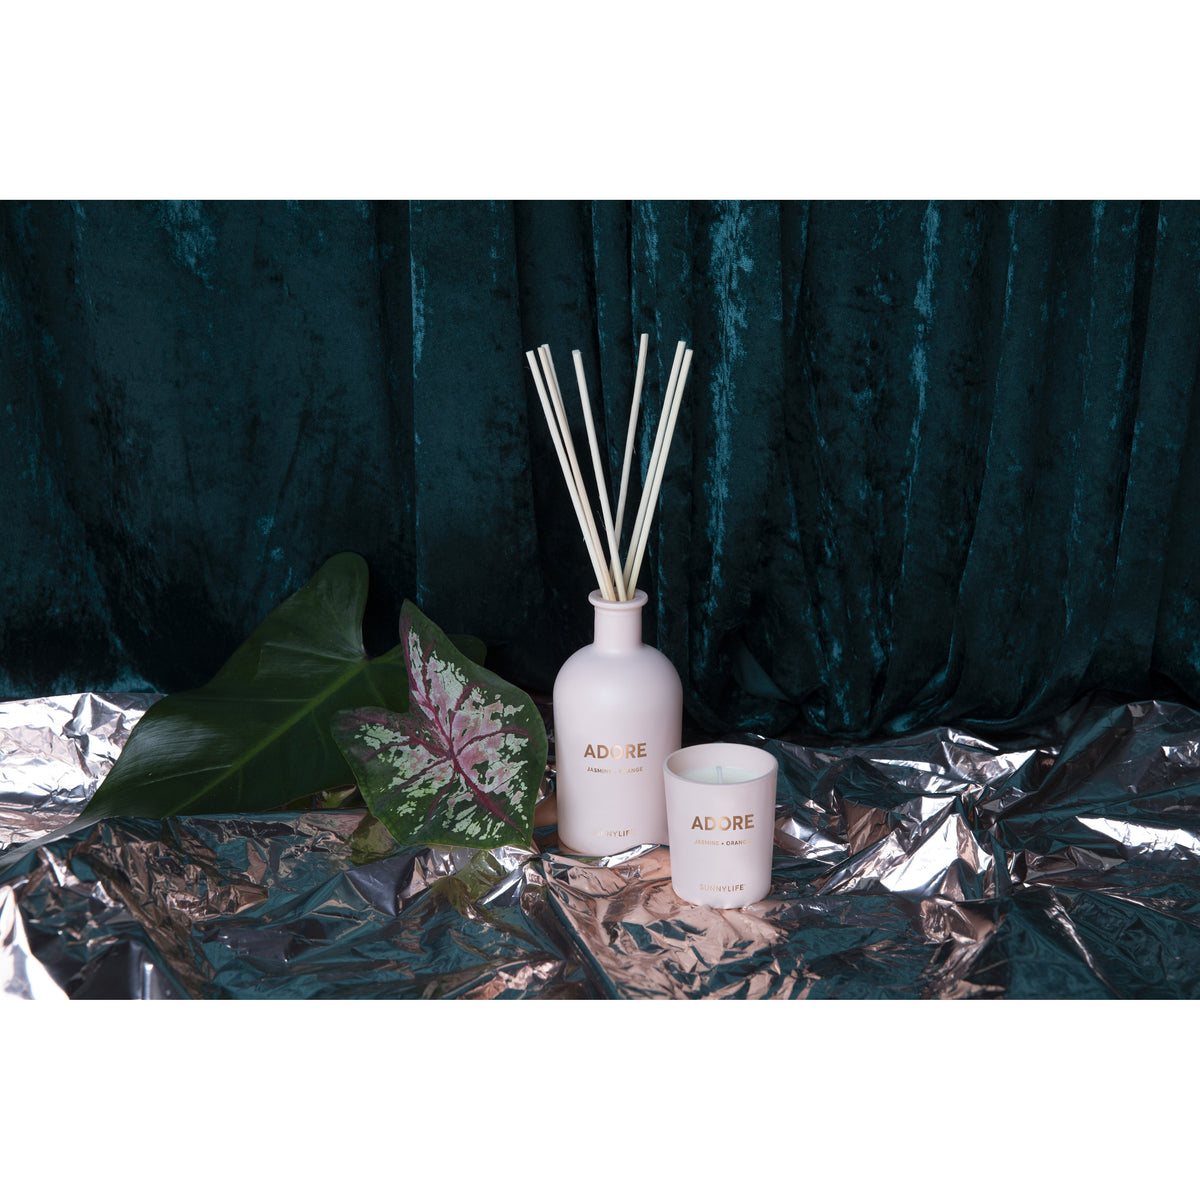 Sunnylife | Scented Candle & Diffuser Set | Adore